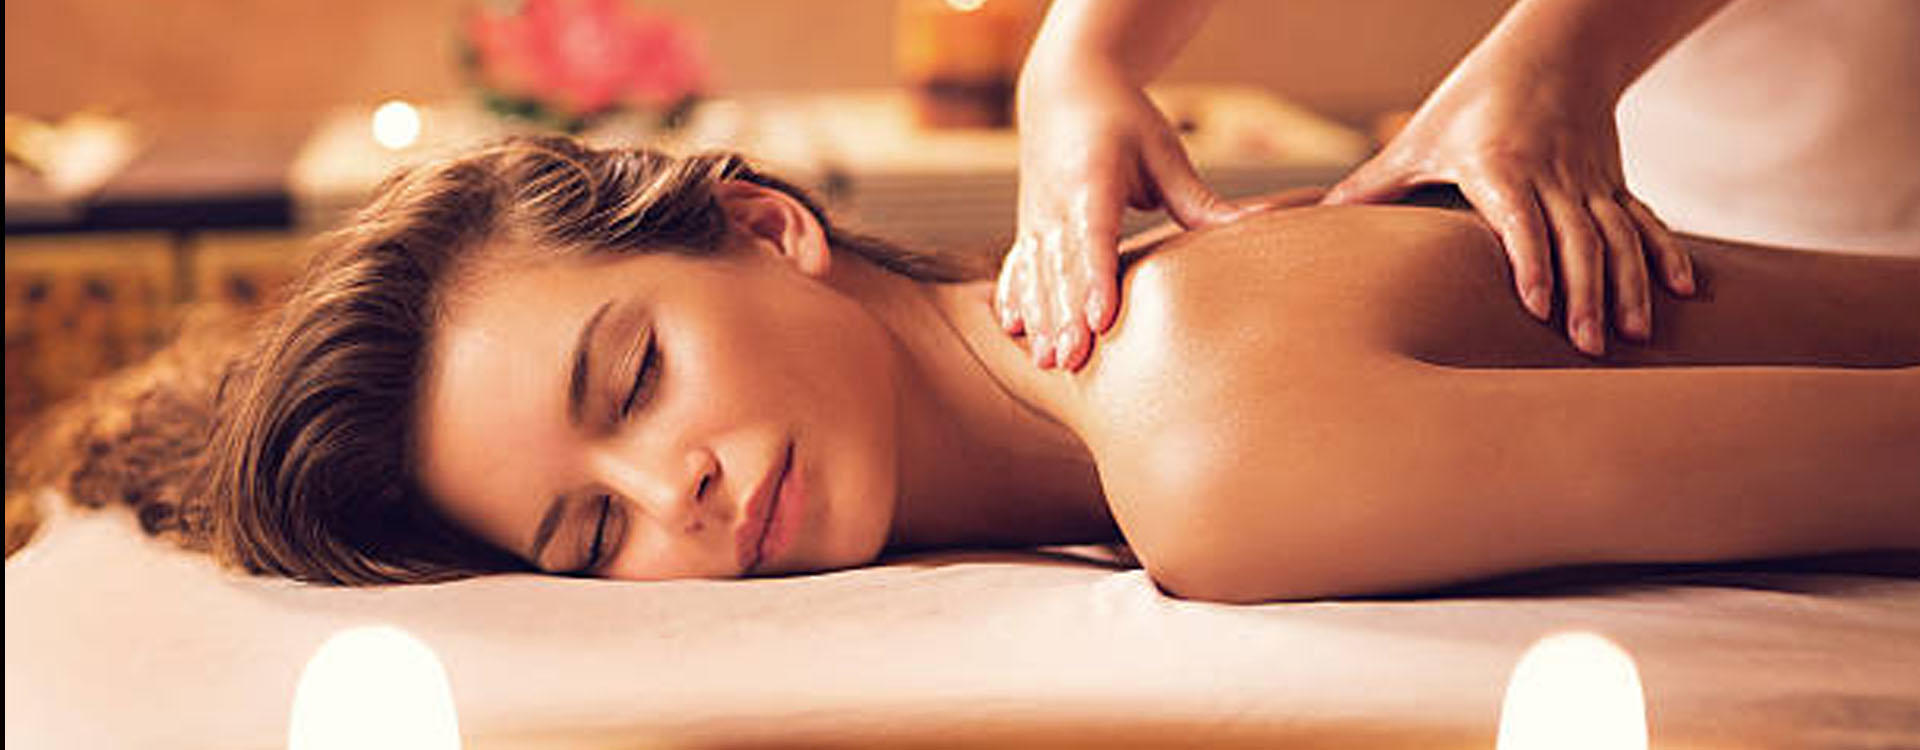 Rejuvenating Massage At Our Globally Acclaimed Spa, ESPA